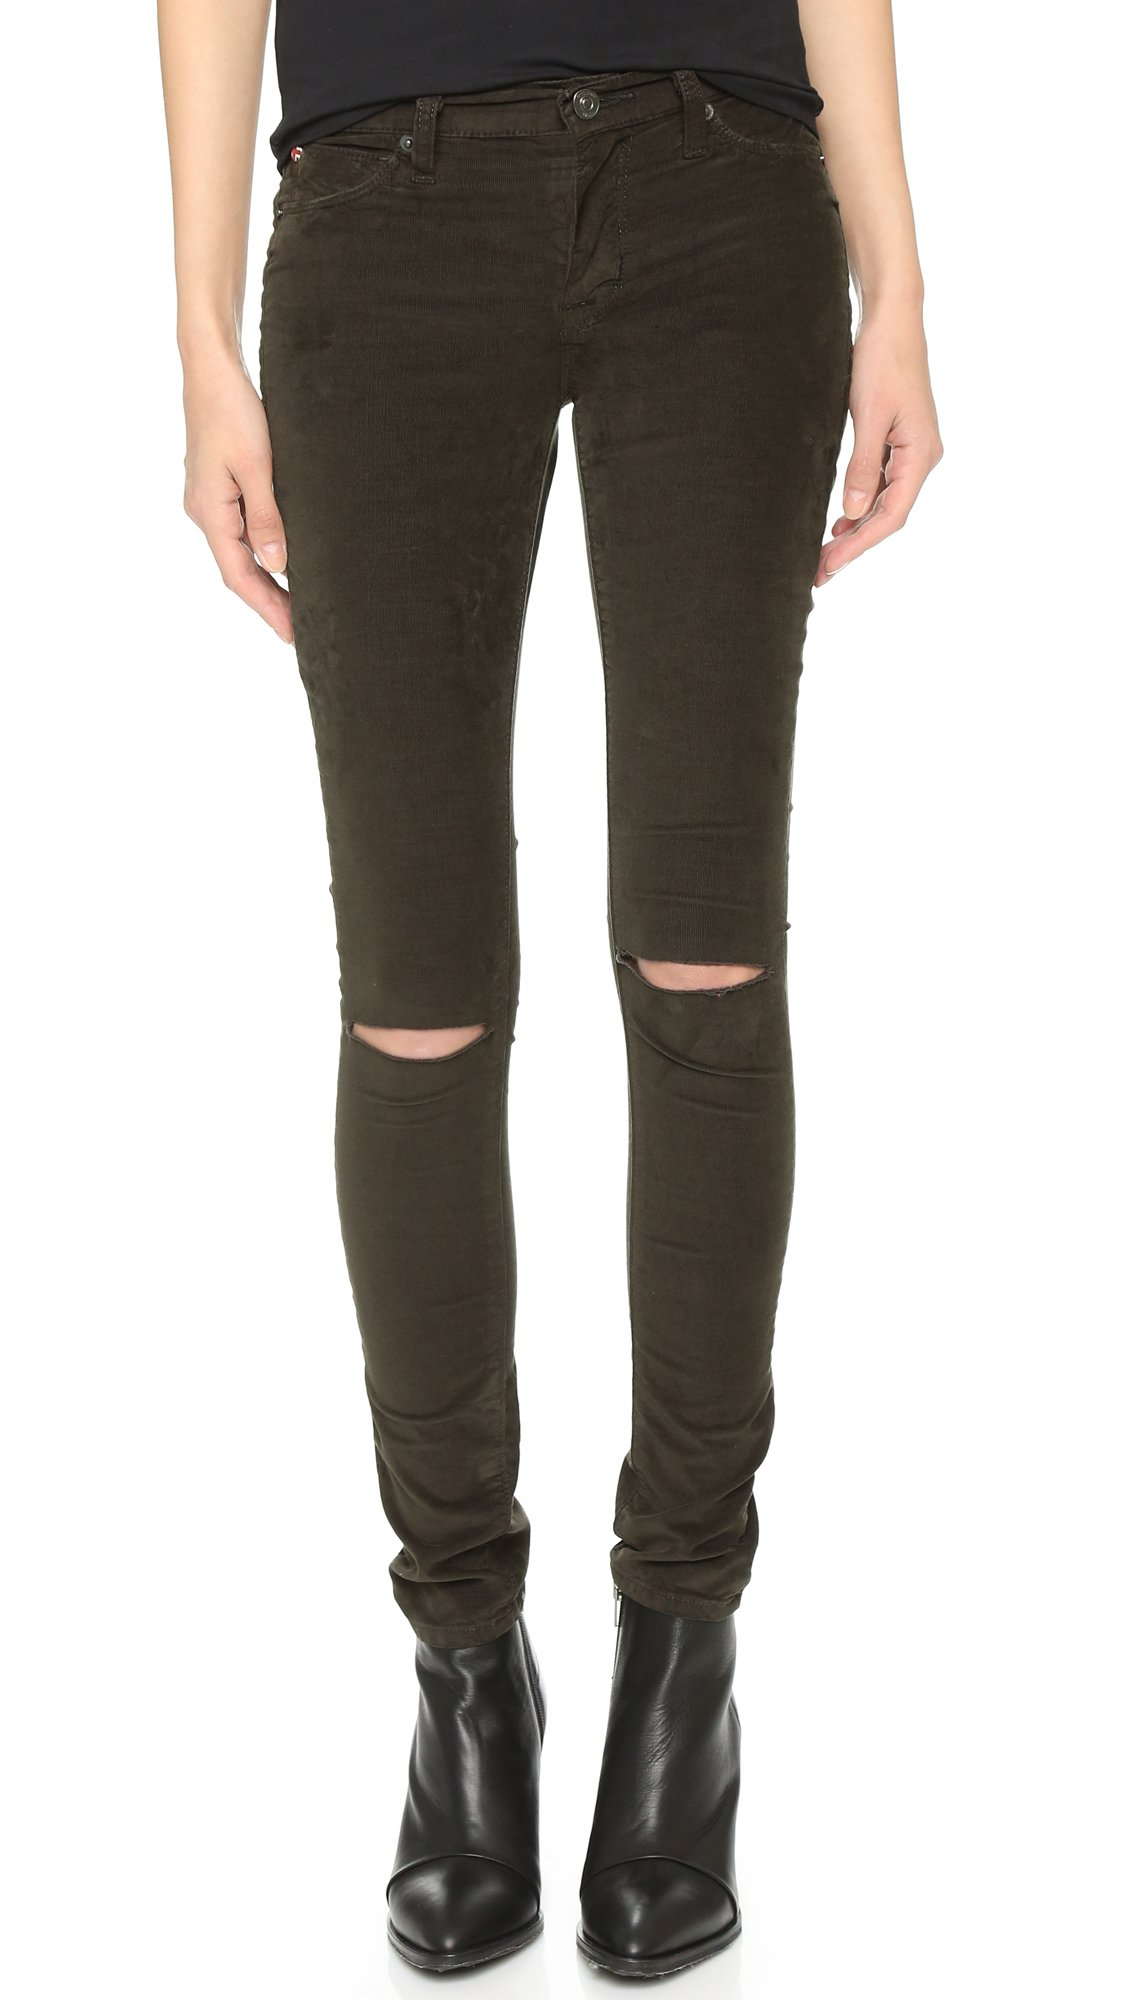 Hudson jeans Nico Super Skinny Corduroy Pants in Brown | Lyst